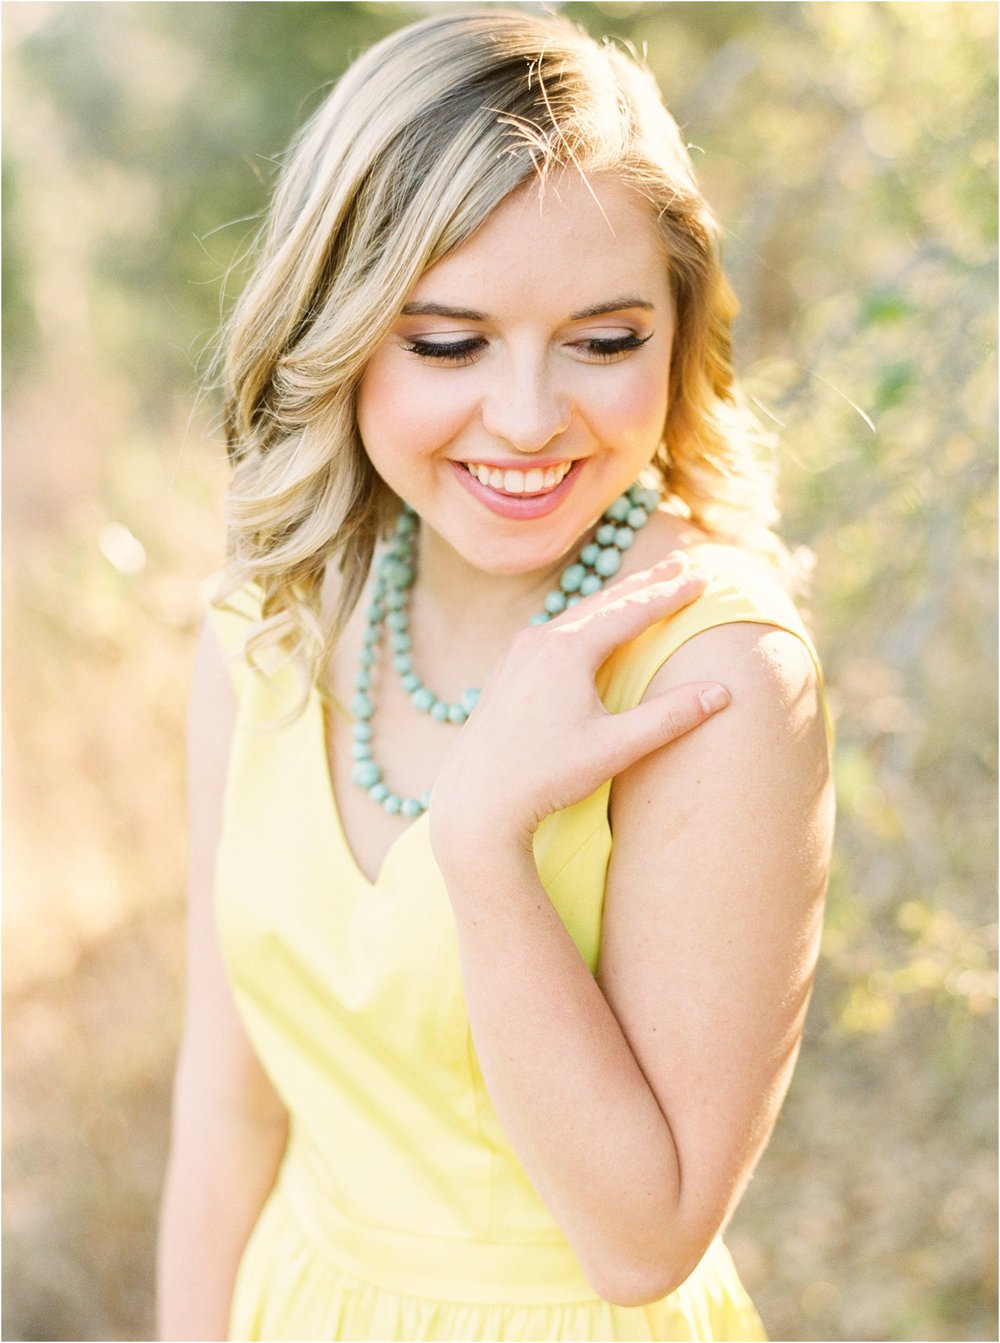 Vandegrift Senior Session - Jessica Christine Photography - Kelly